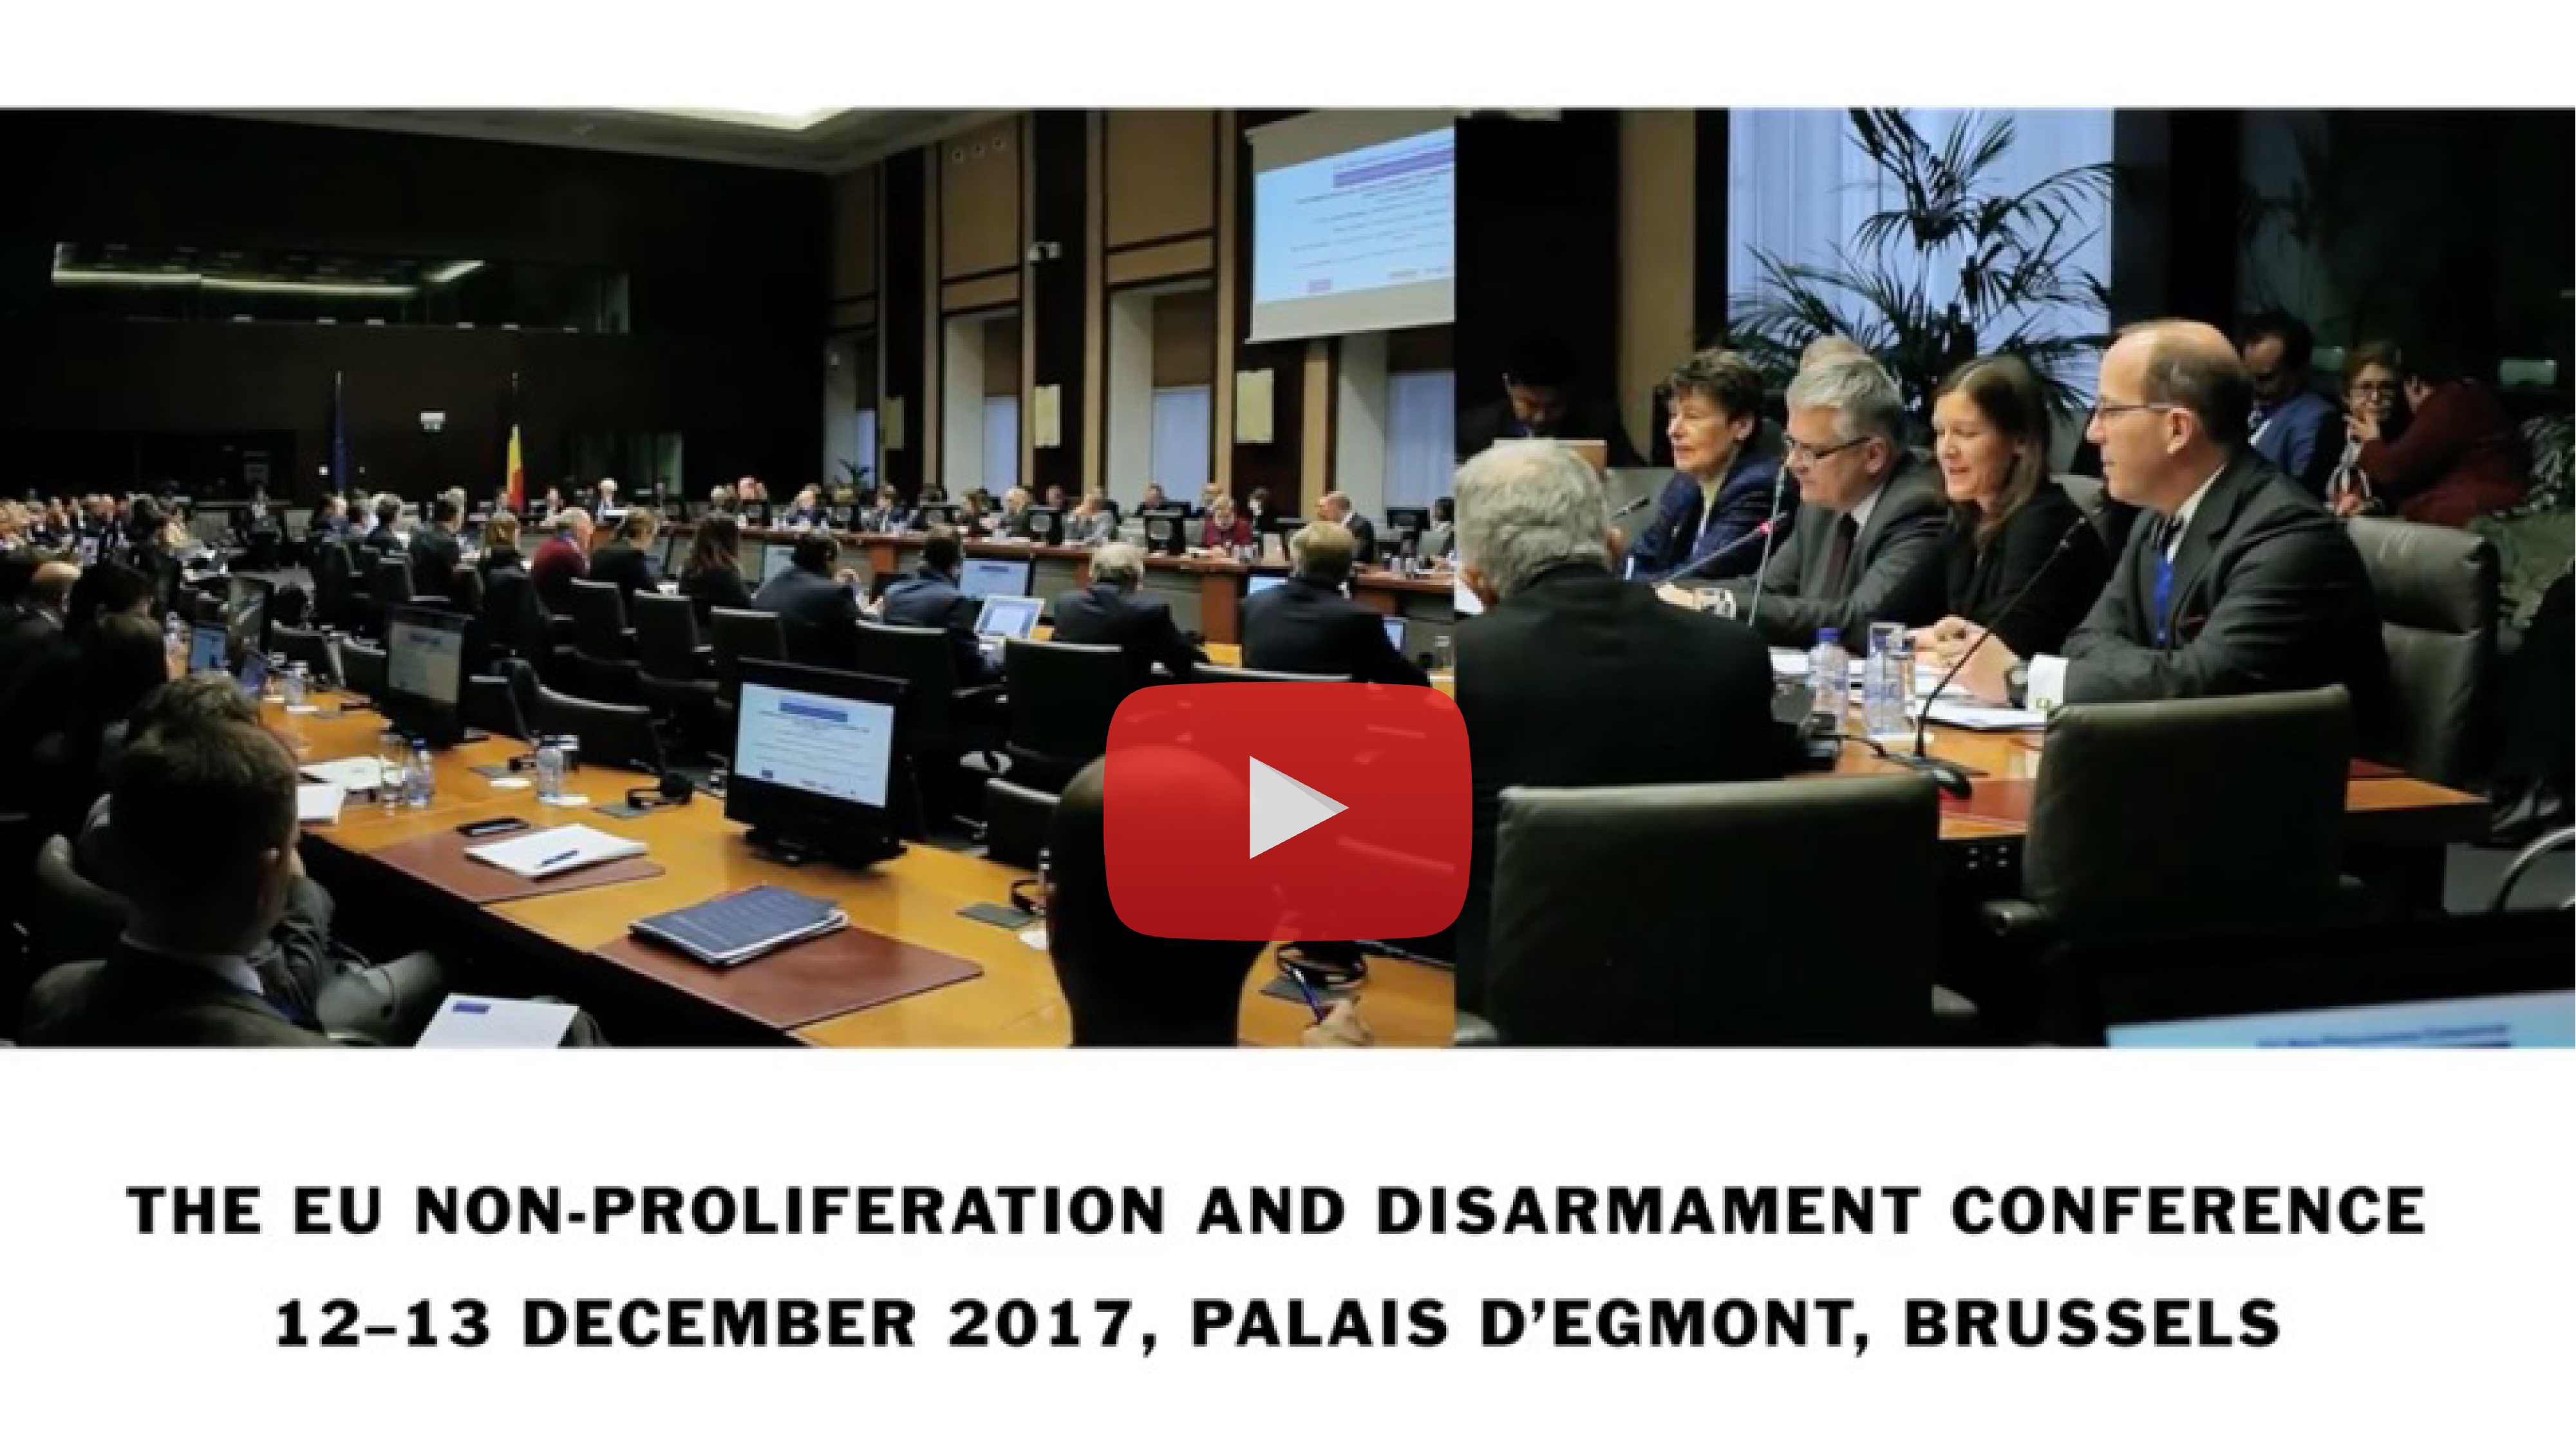 The EU Non-Proliferation and Disarmament Conference